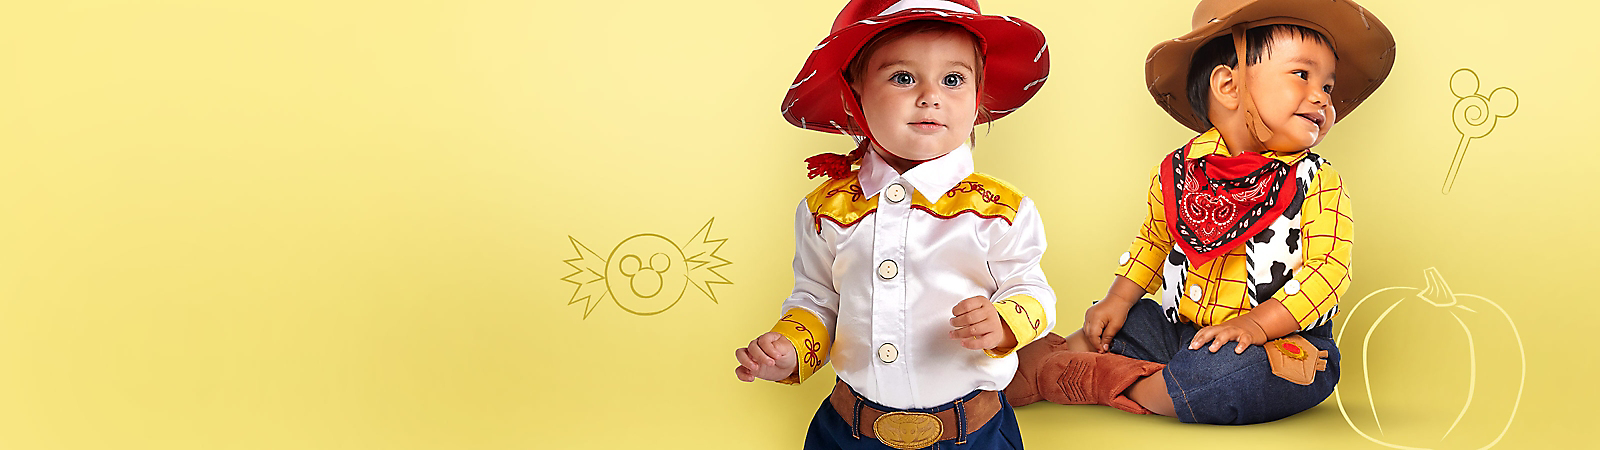 Halloween Costumes For Couples And Baby.Halloween Costumes For Baby Shopdisney